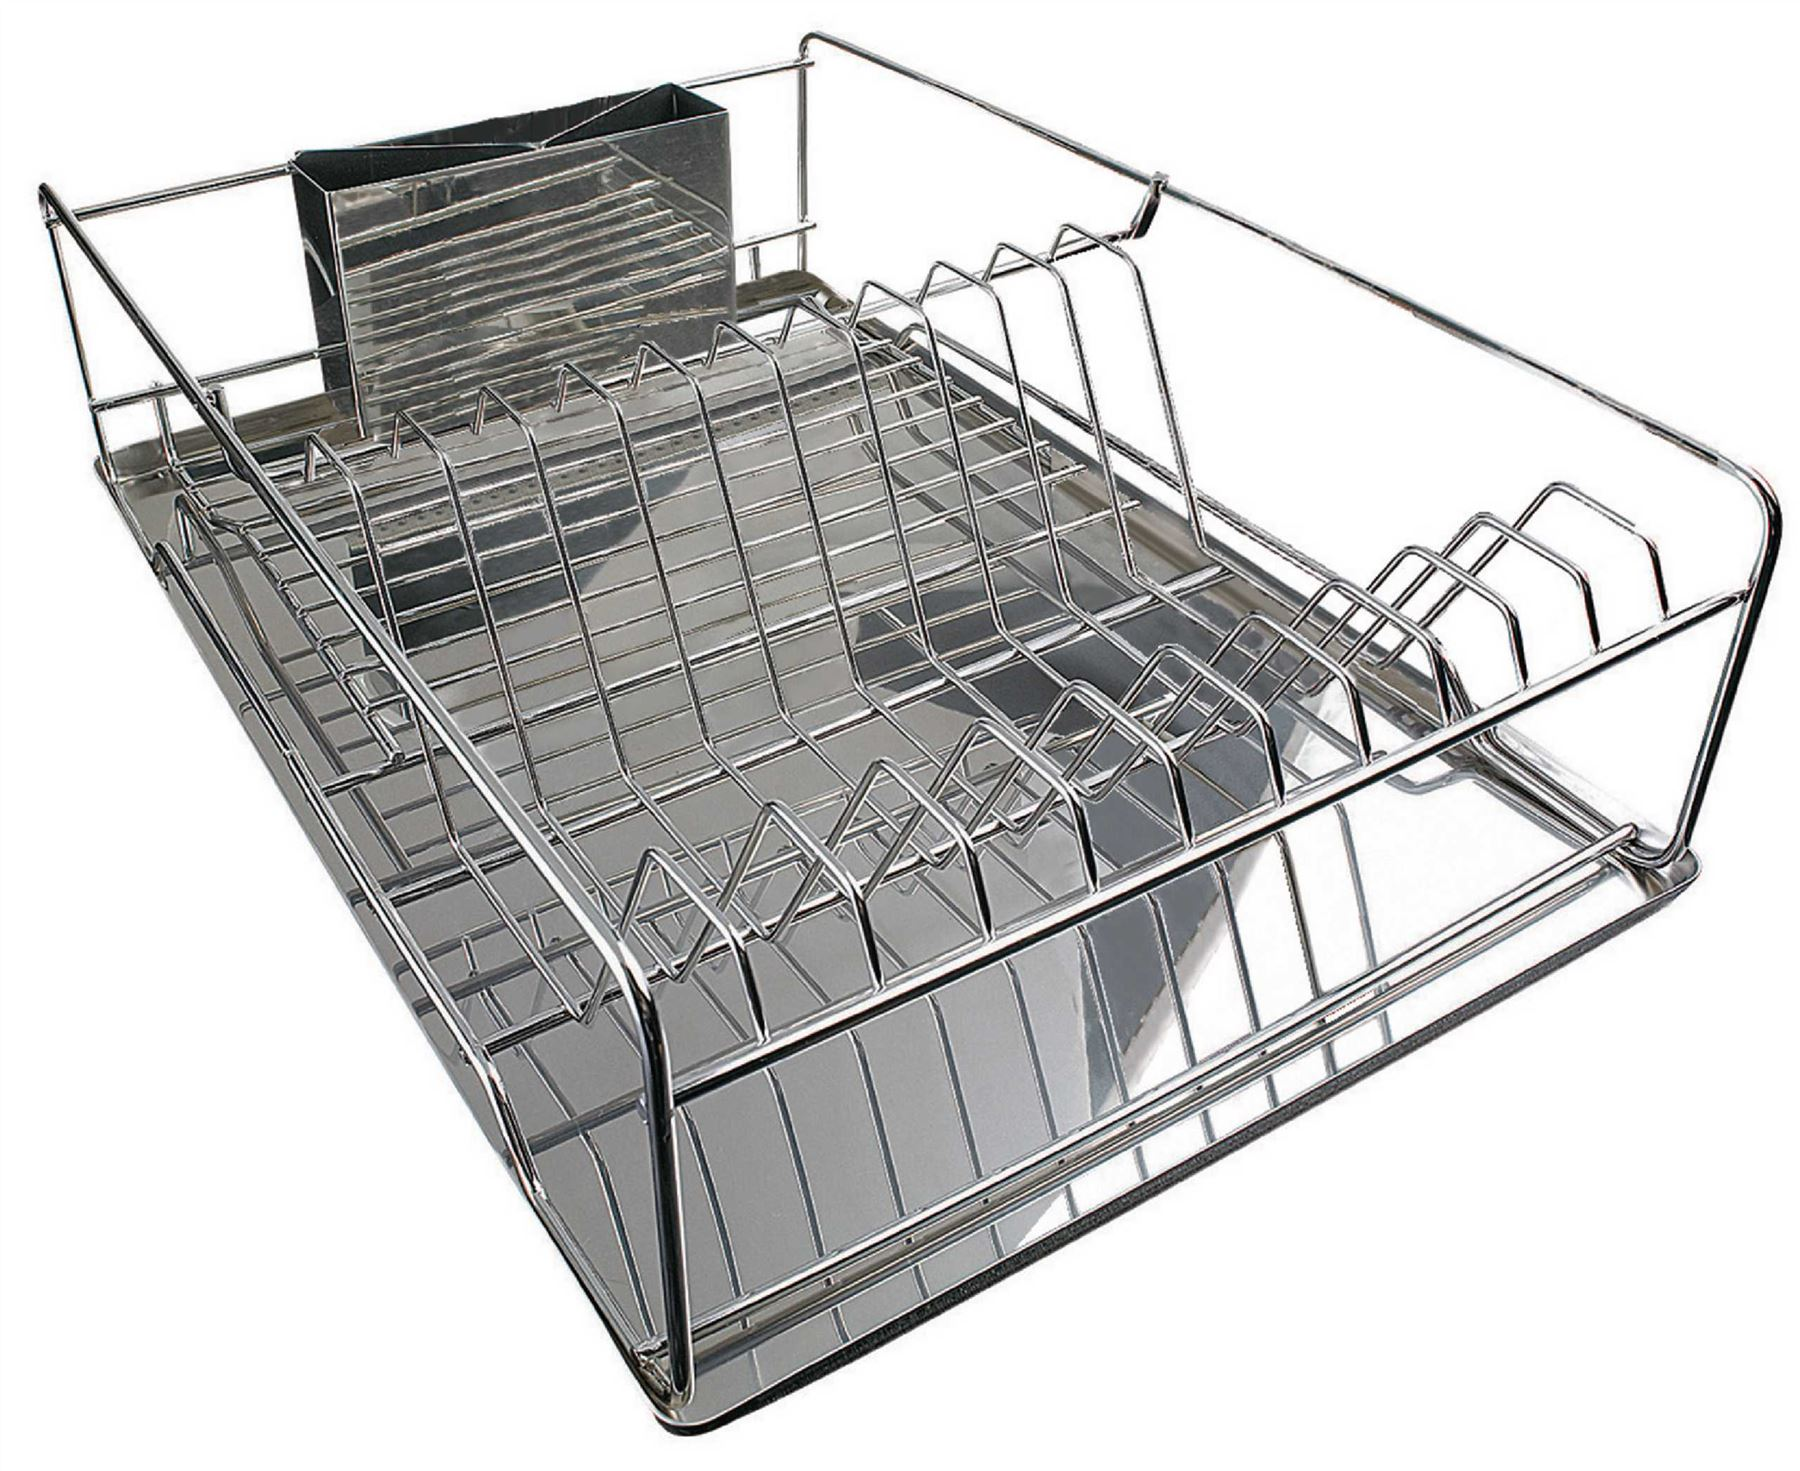 Plastic Dish Rack With Tray Double Deck Kitchen Drainer